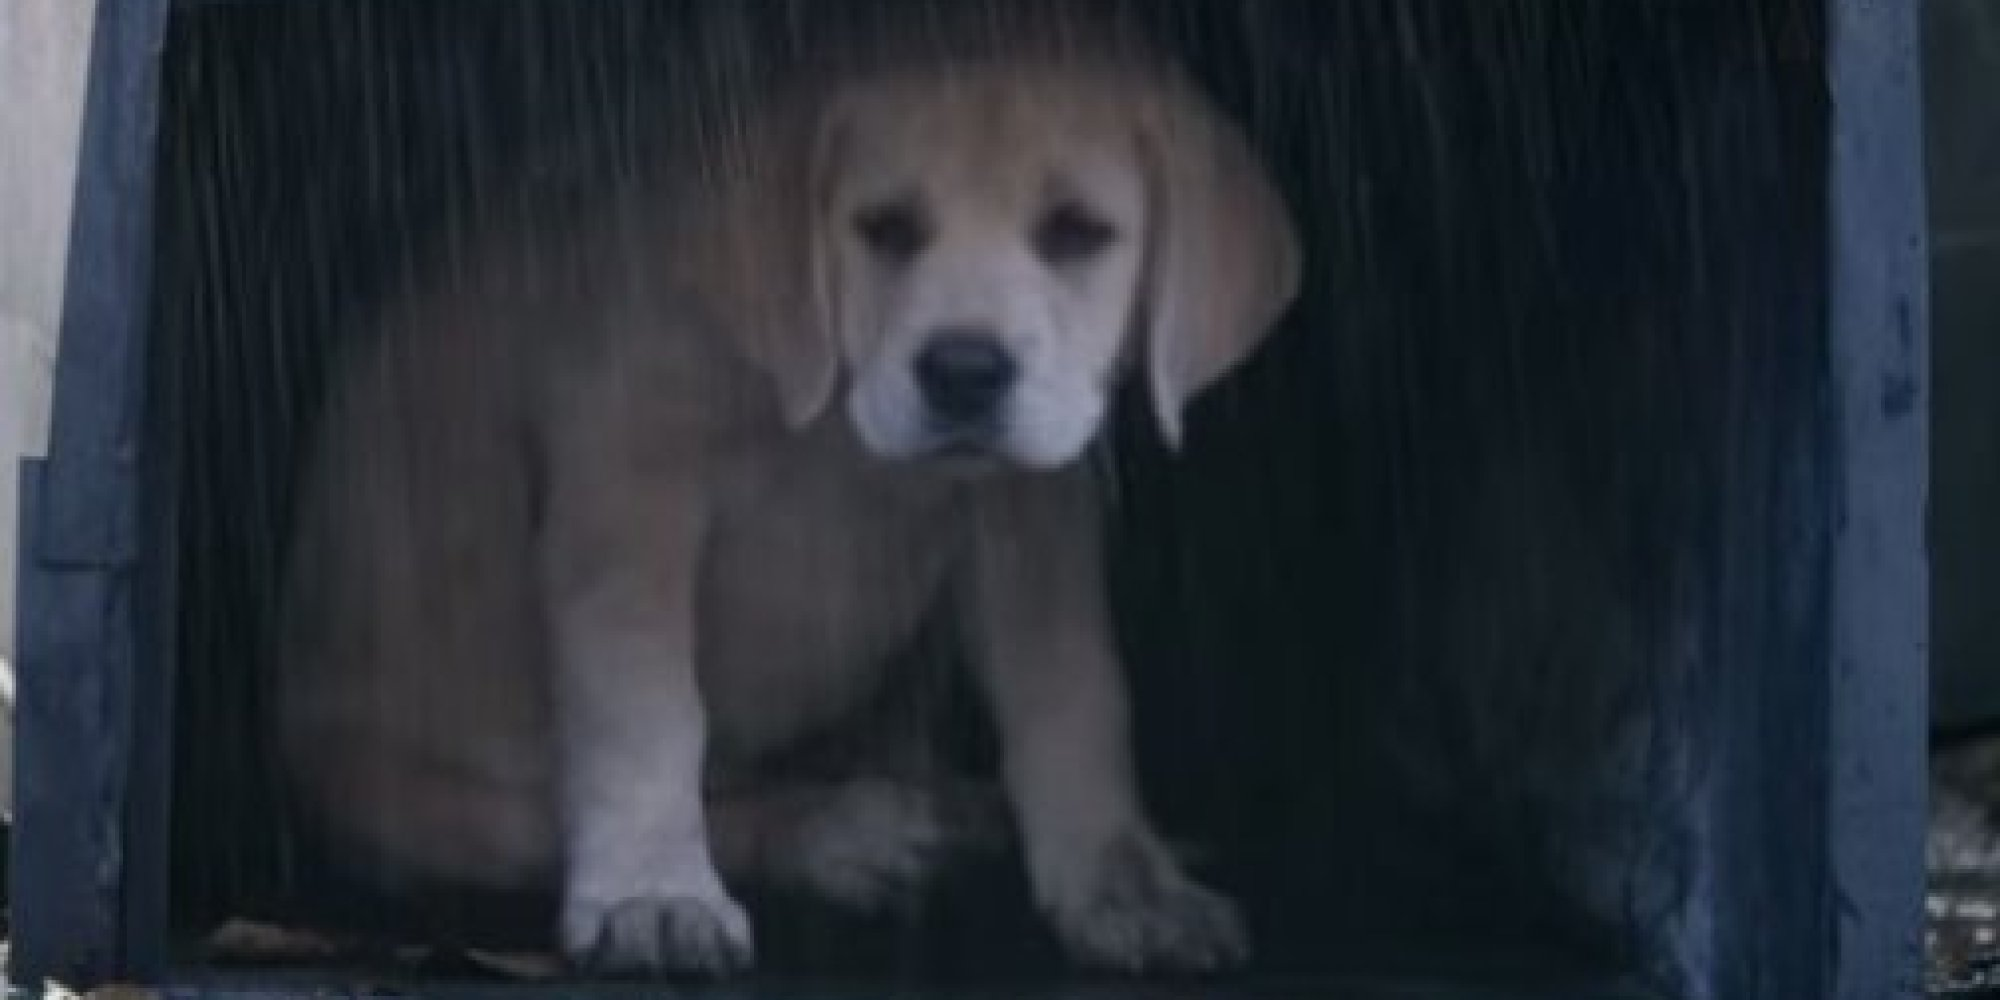 Budweisers super bowl 2015 puppy commercial is too adorable to budweisers super bowl 2015 puppy commercial is too adorable to handle huffpost aloadofball Images